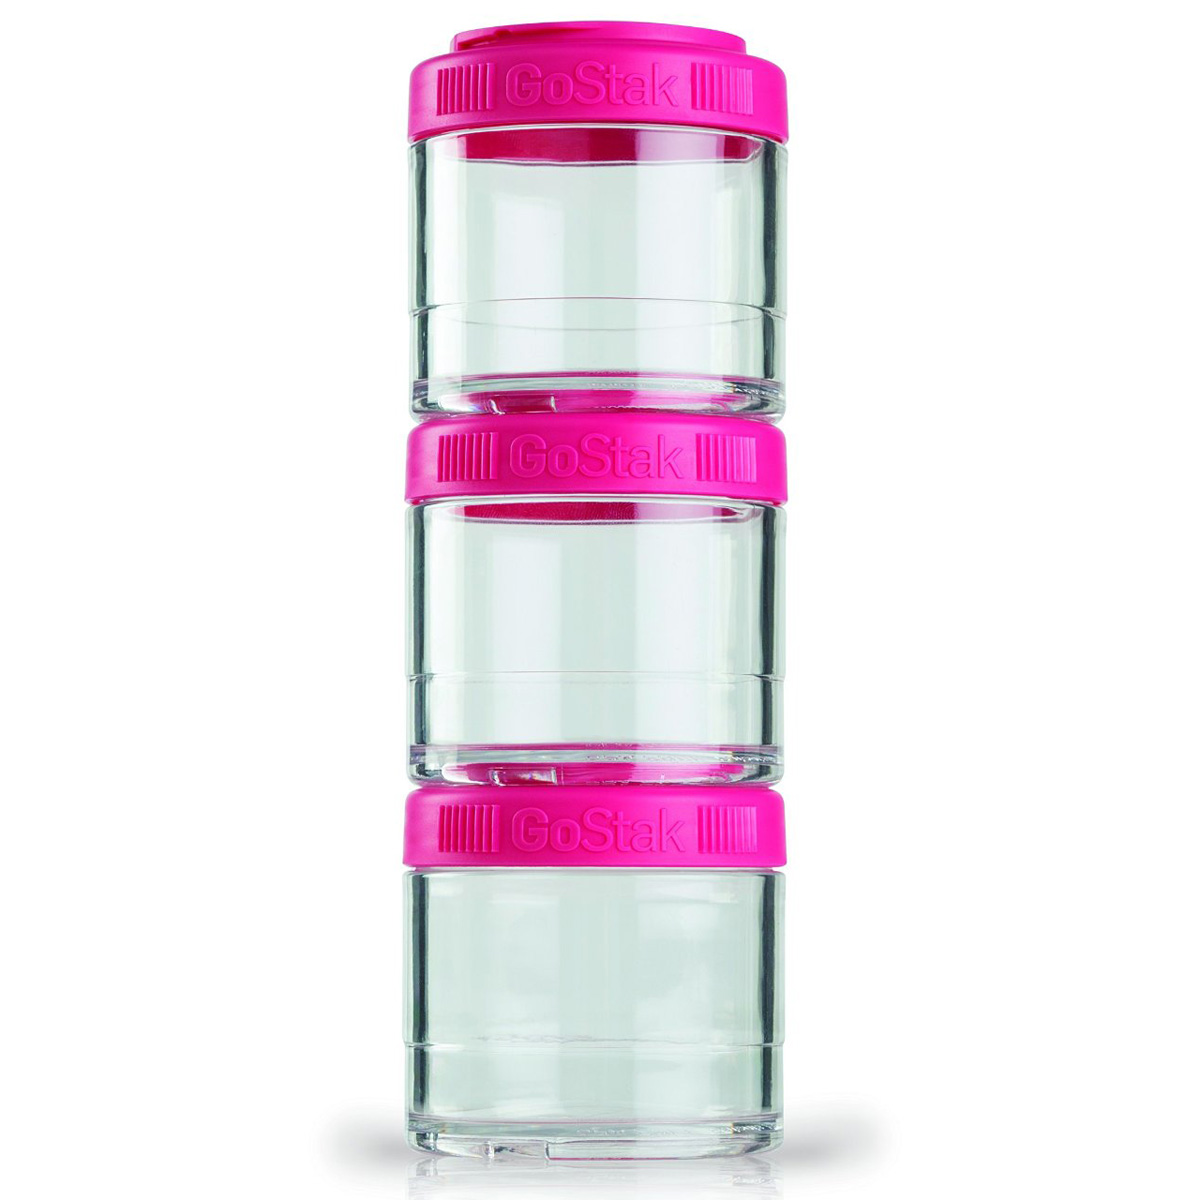 Blender Bottle GoStak 100cc 3Pak Twist n' Lock Storage Jars by Blender Bottle